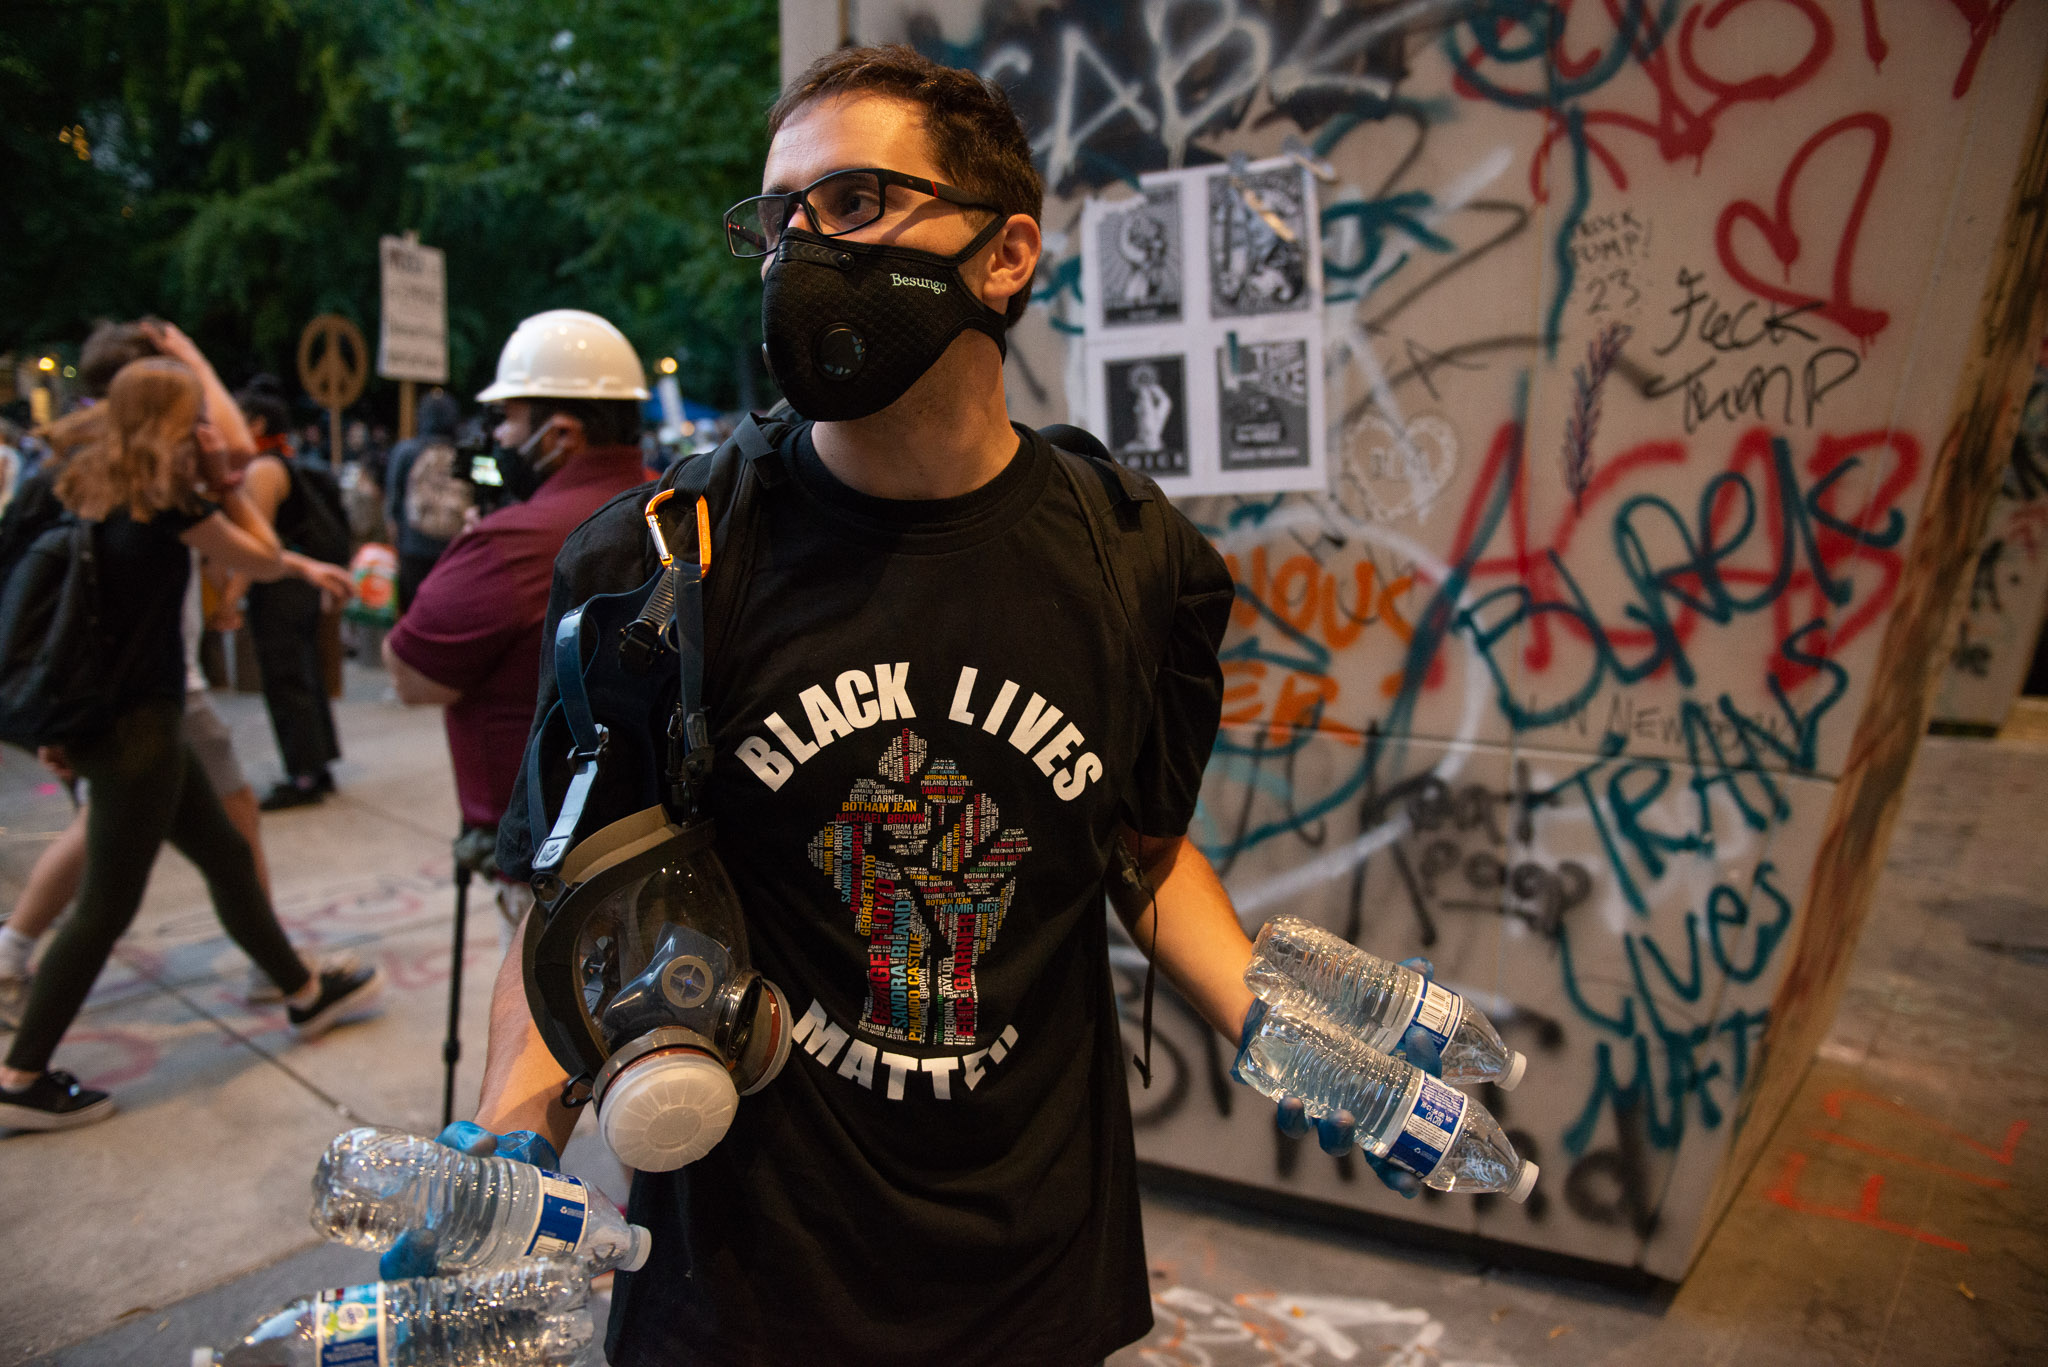 Michael Martinez, a graduate student at OHSU who has been volunteering as a street medic during Portland's Black Lives Matter protests.